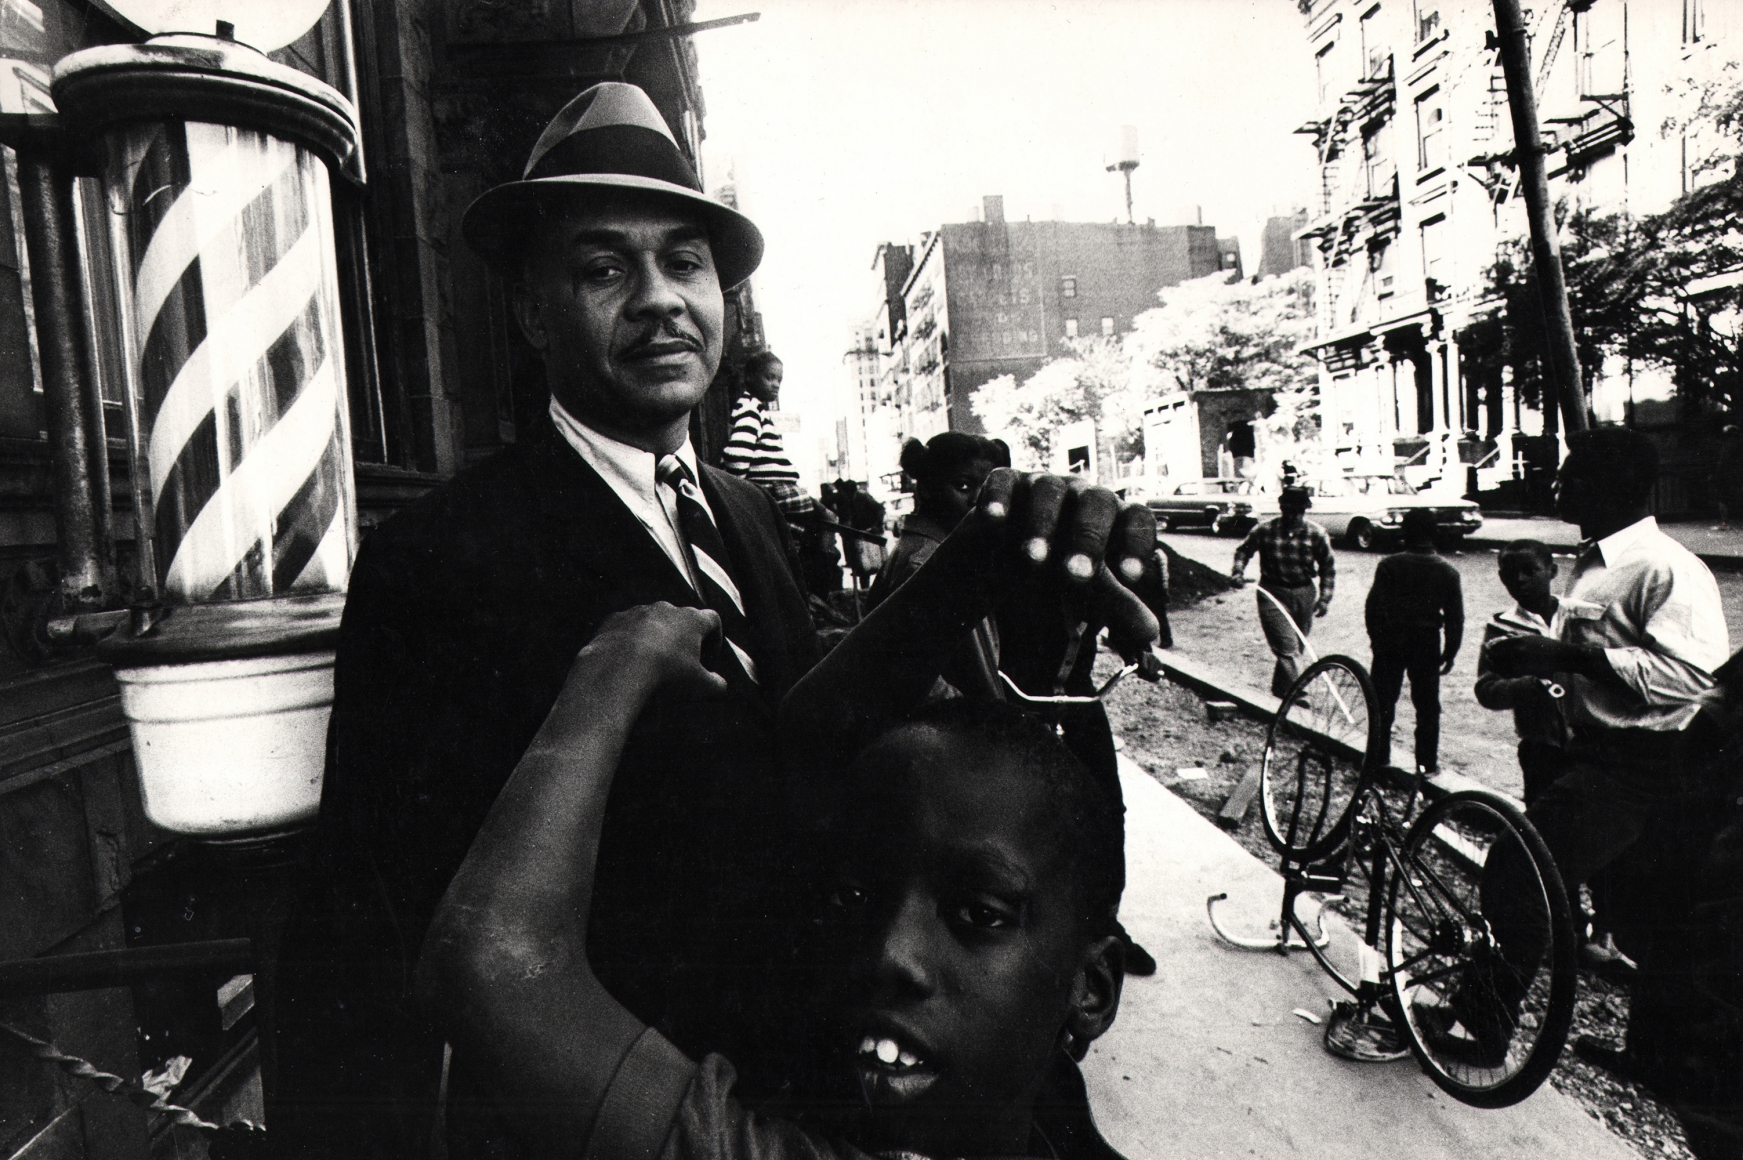 David Attie, Ralph Ellison in Harlem, 1966. Subject poses on the street beside a barber shop, looking into the camera as various figures move around him.